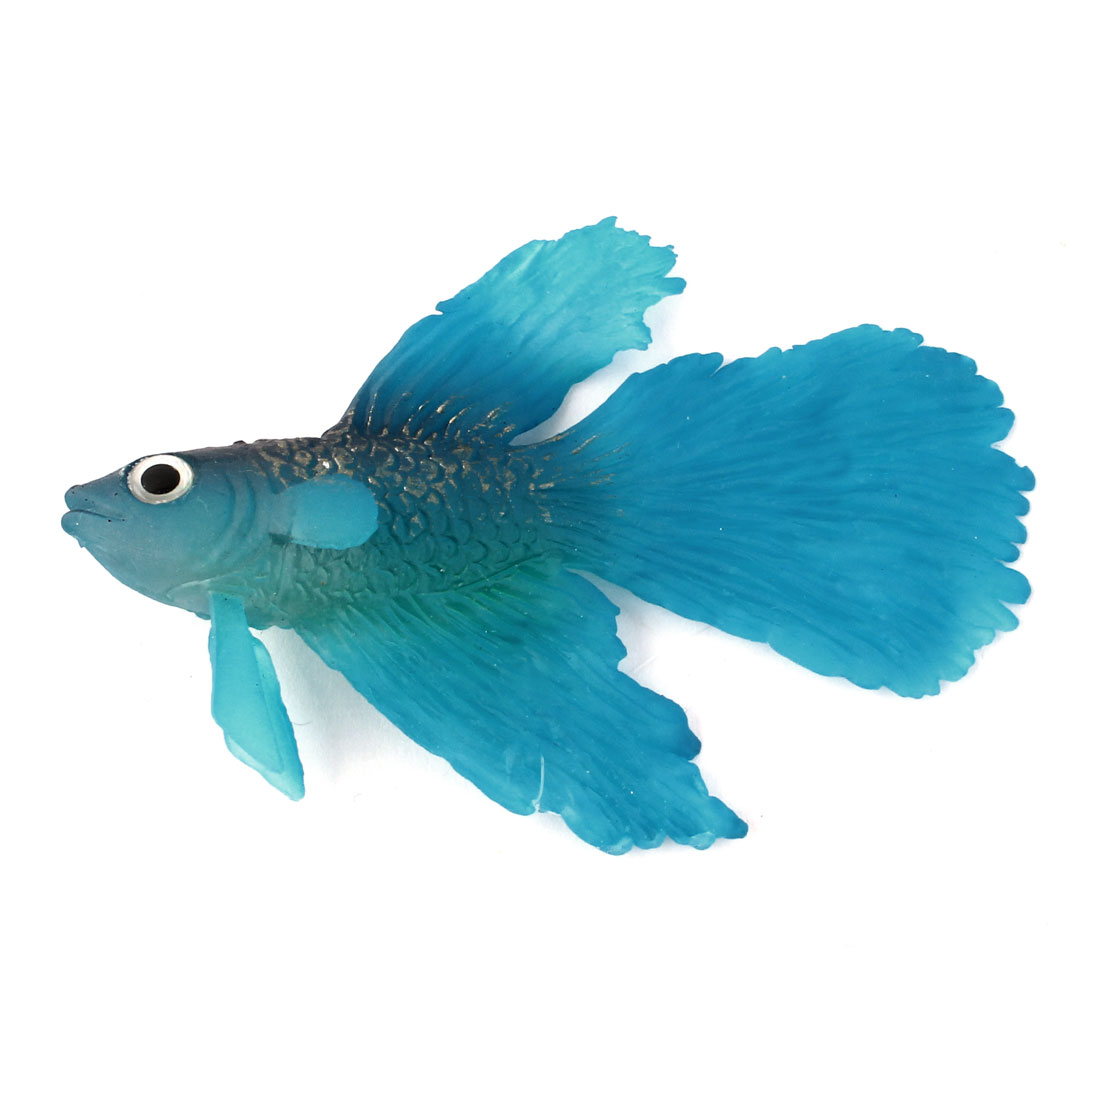 Home Aquarium Suction Cup Thread Tropical Sea Aquatic Floating Rumble Fish Blue